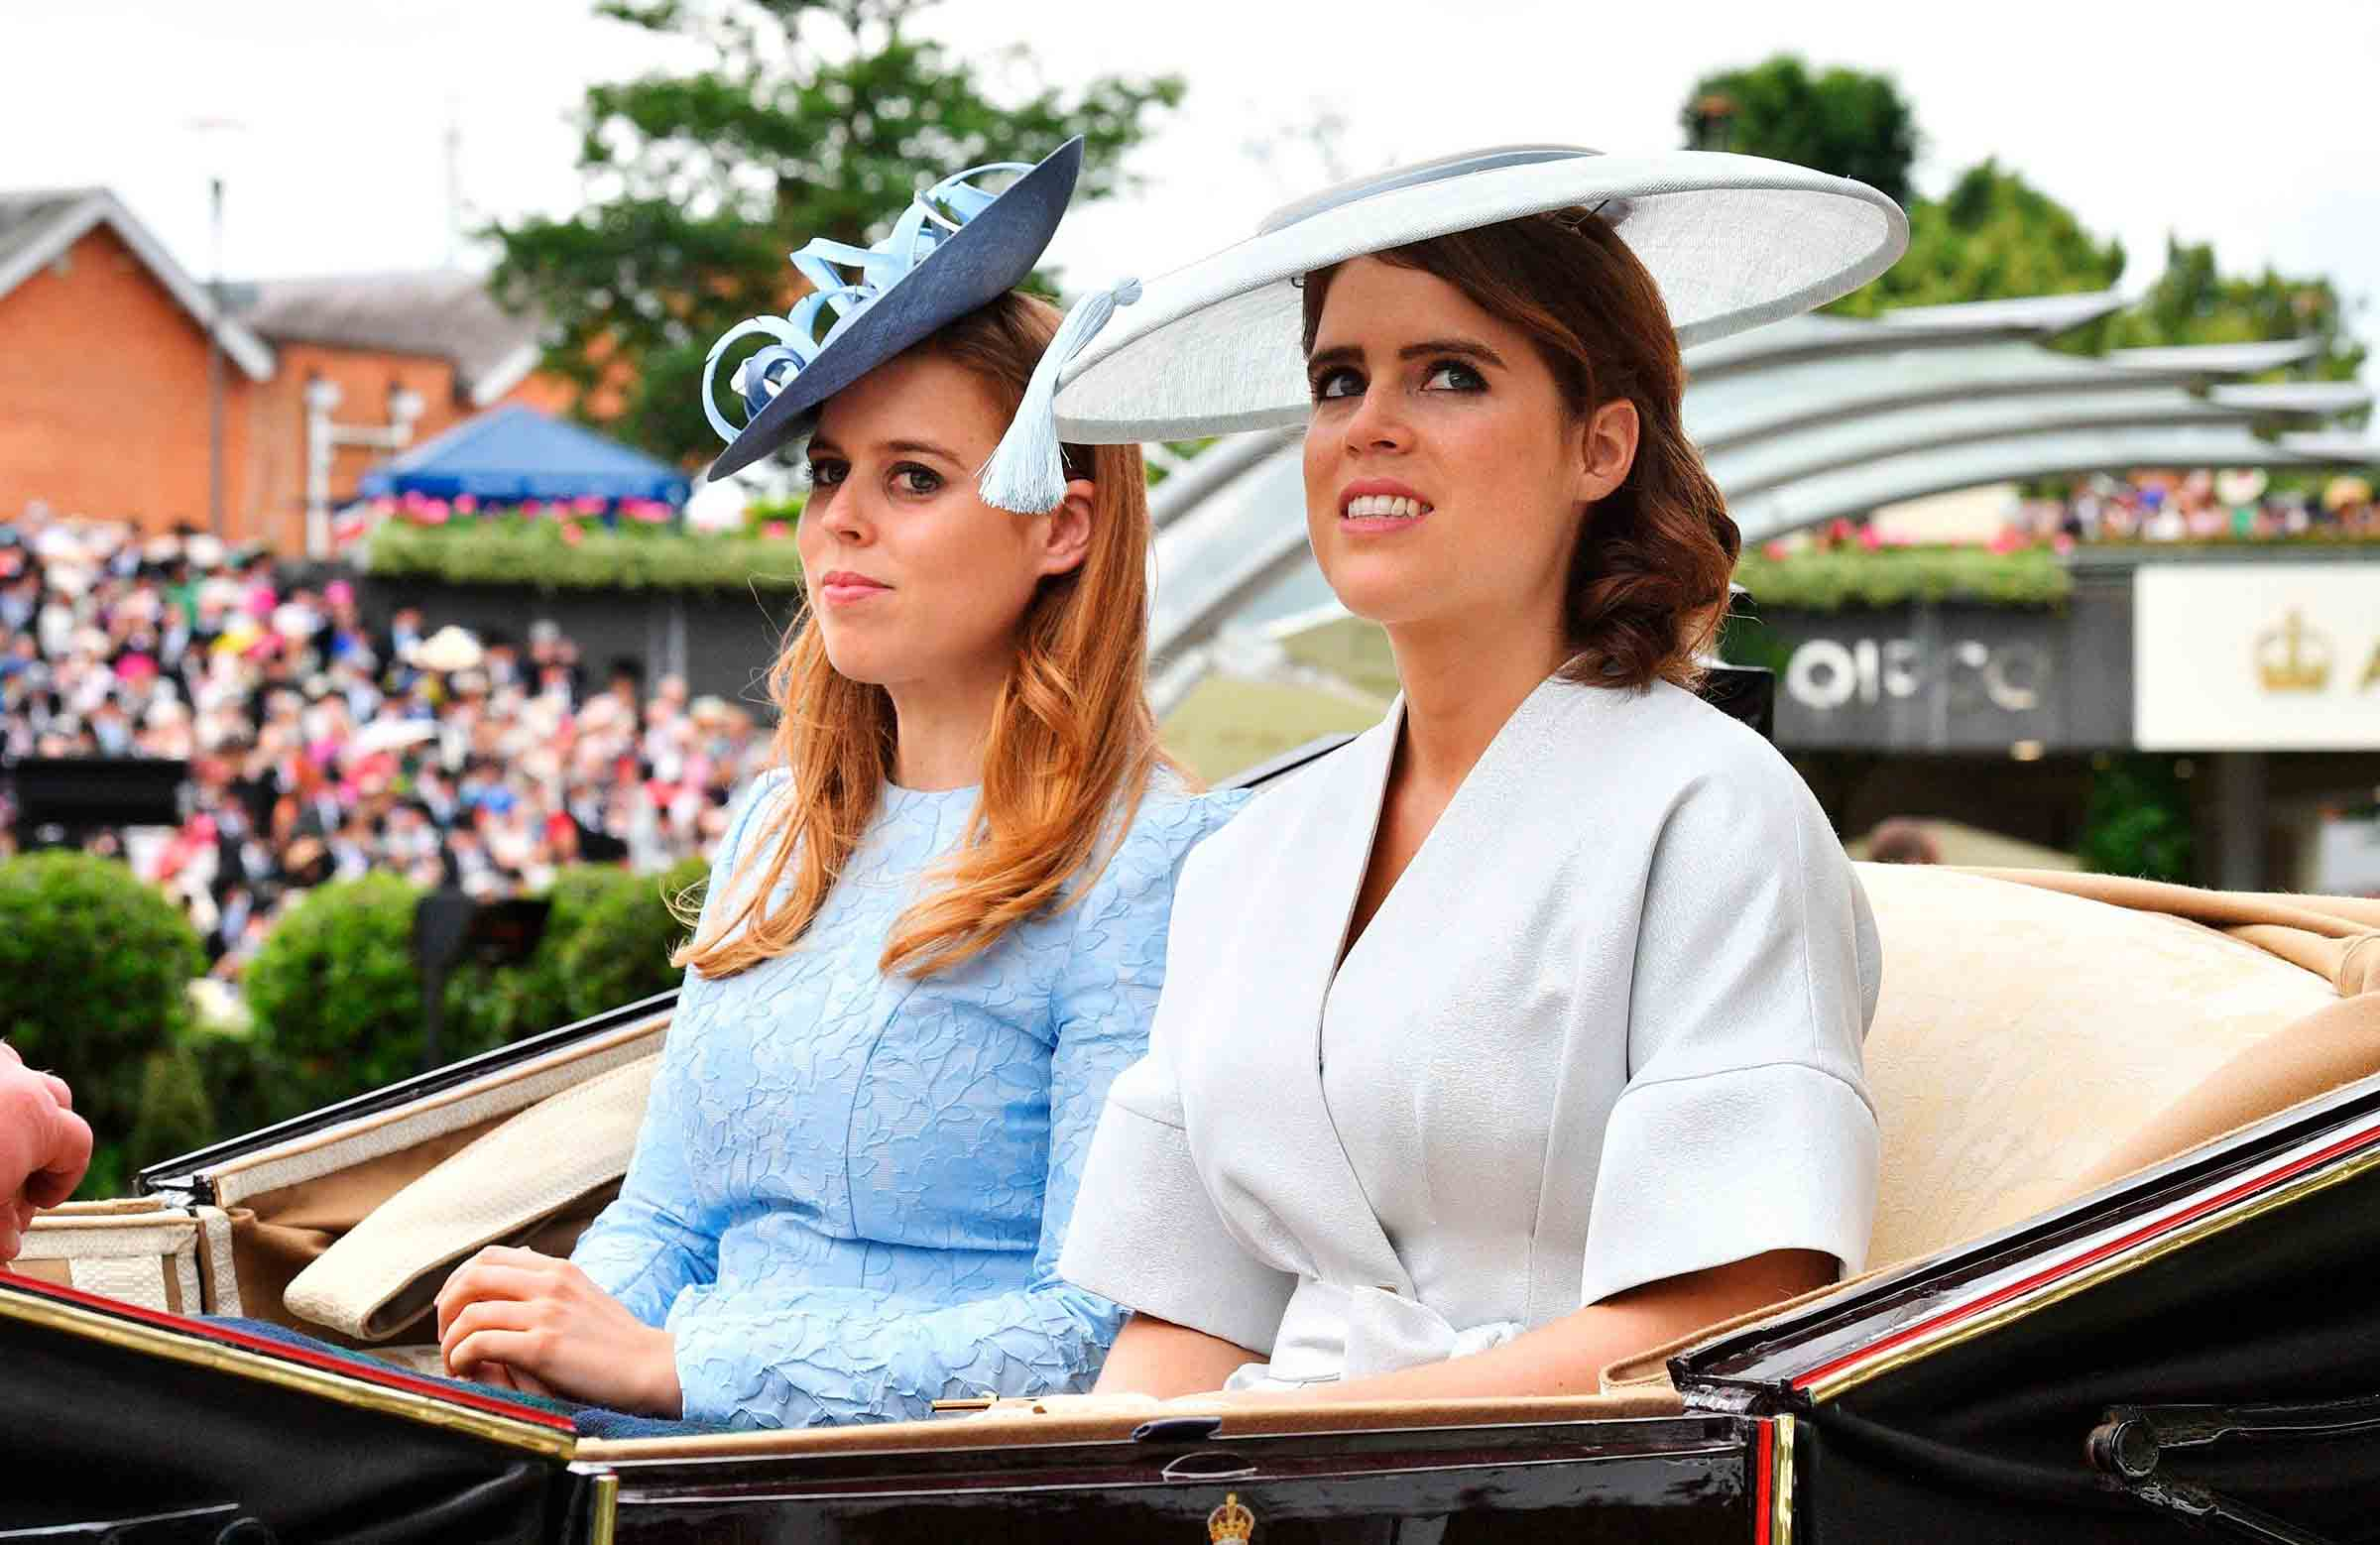 10 things you didn't know about Princess Beatrice